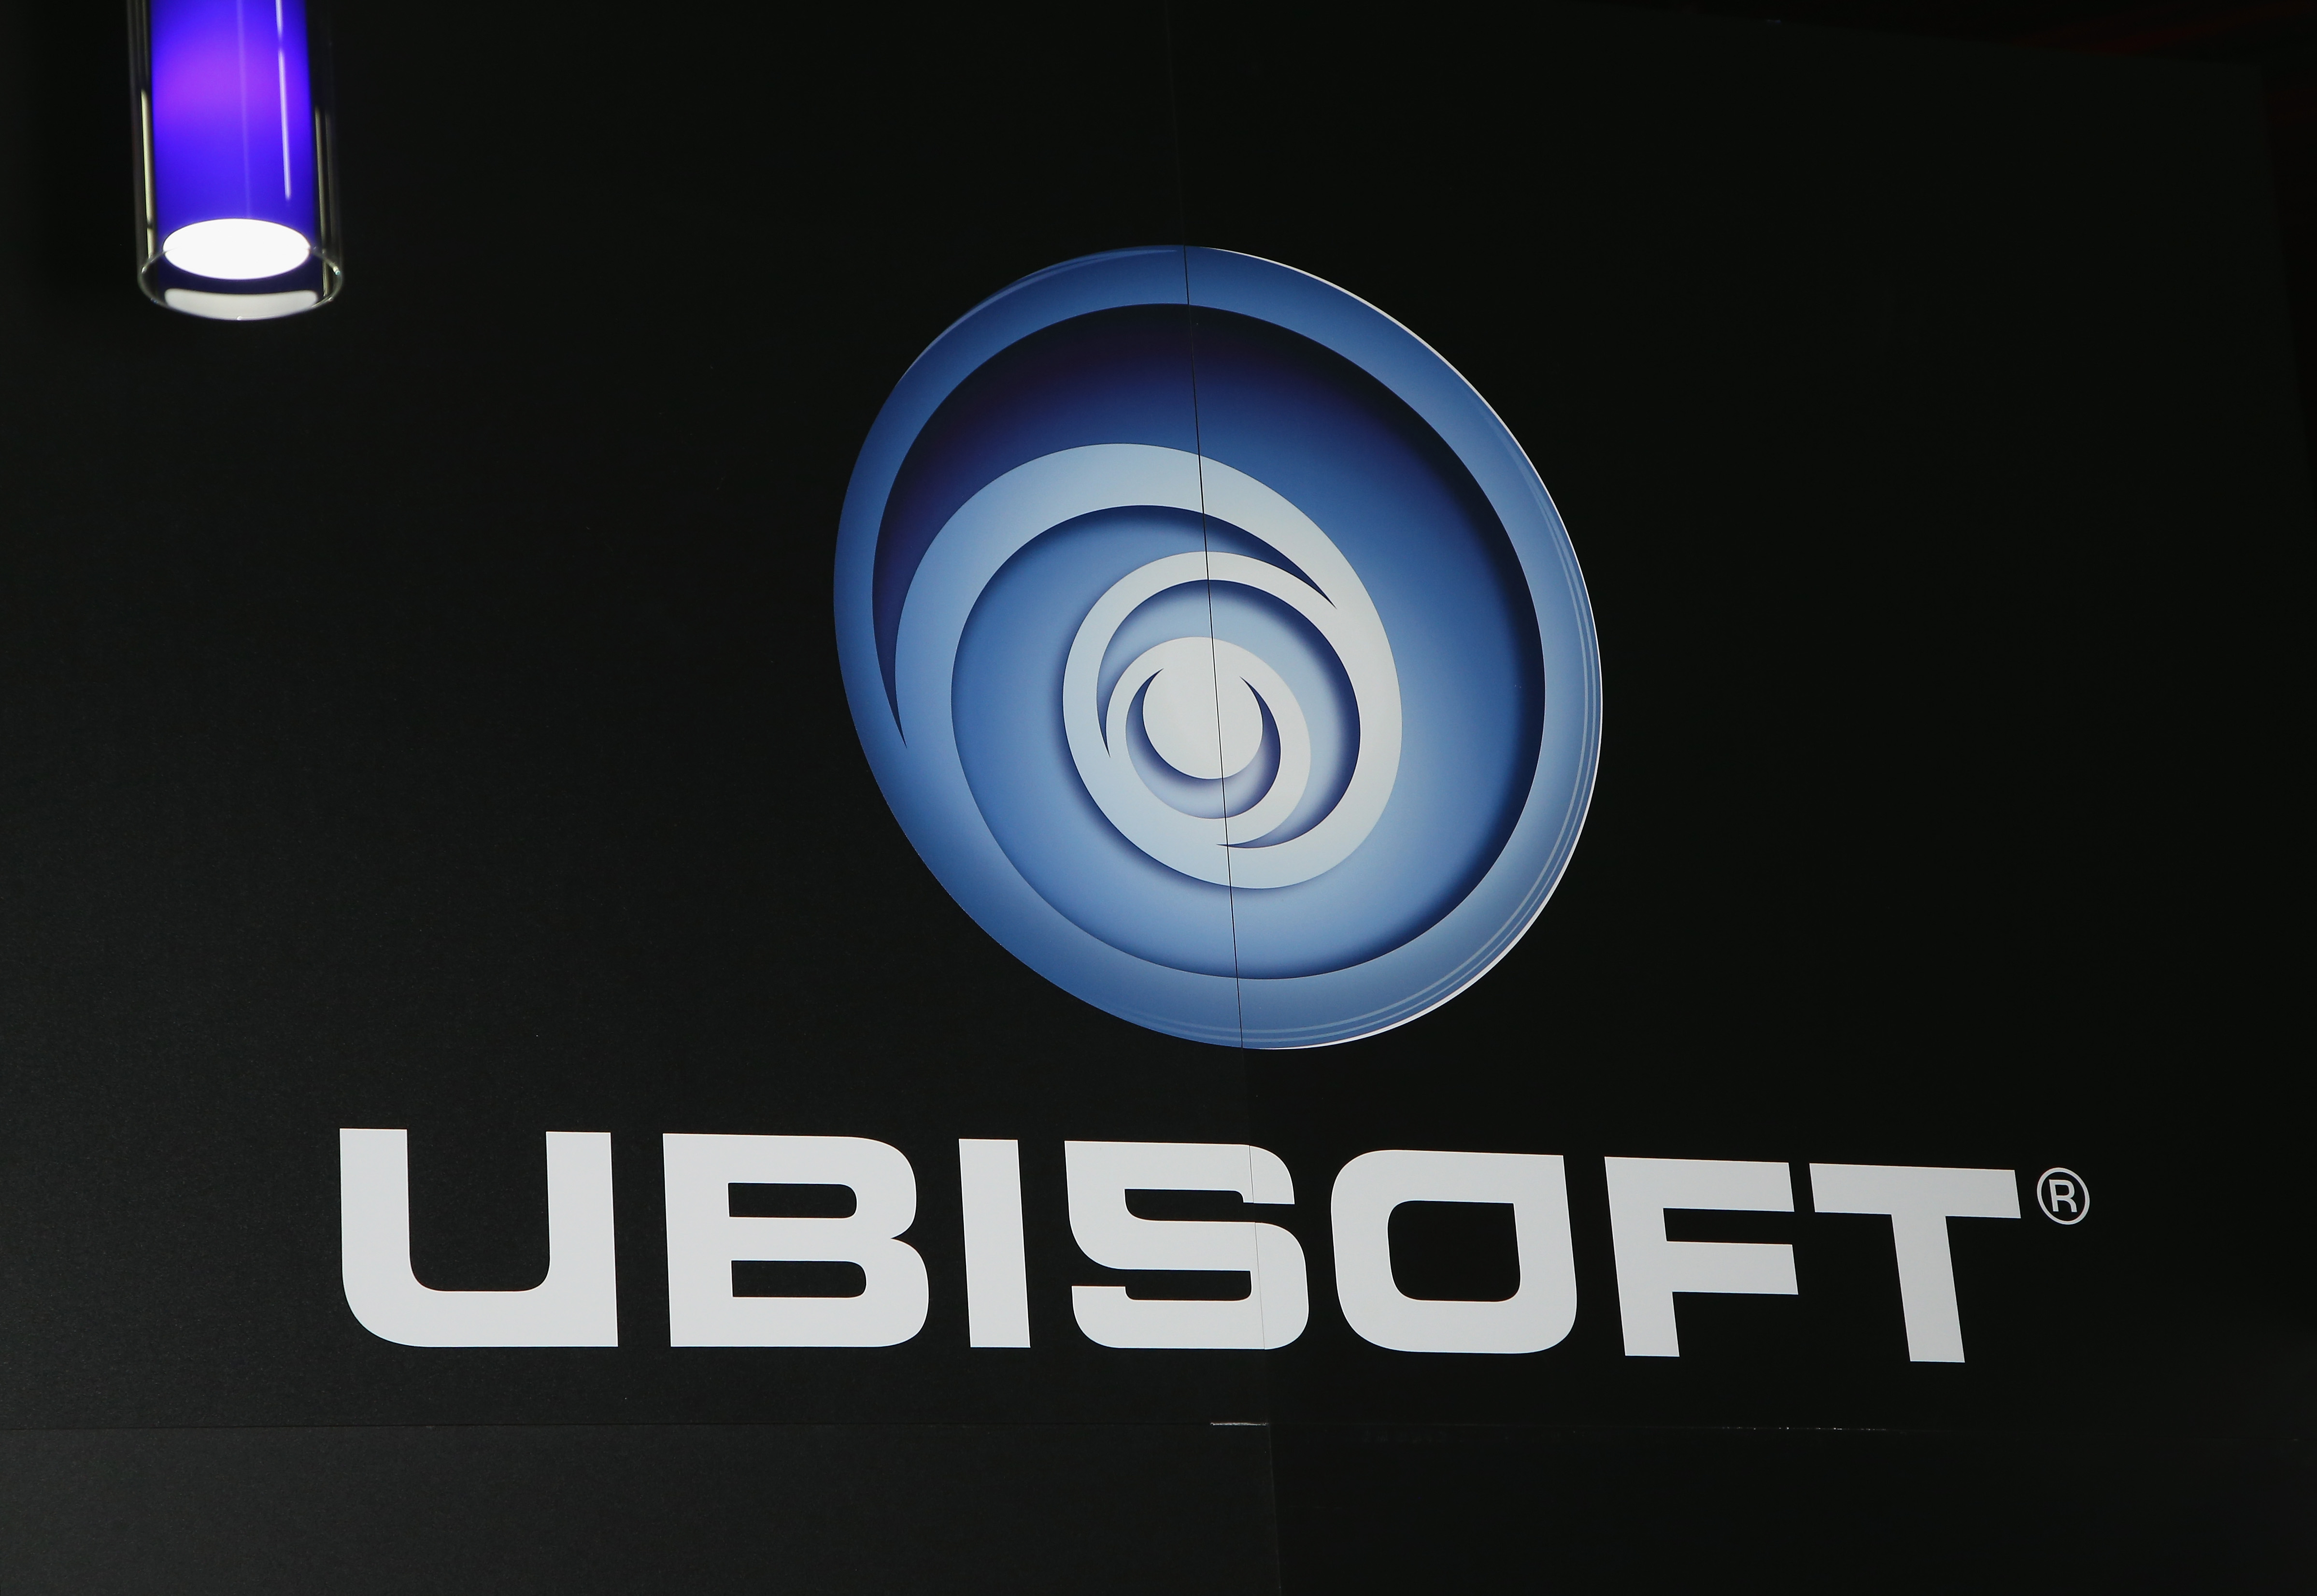 Ubisoft Launches Uplay+, a Subscription Gaming Service | Fortune